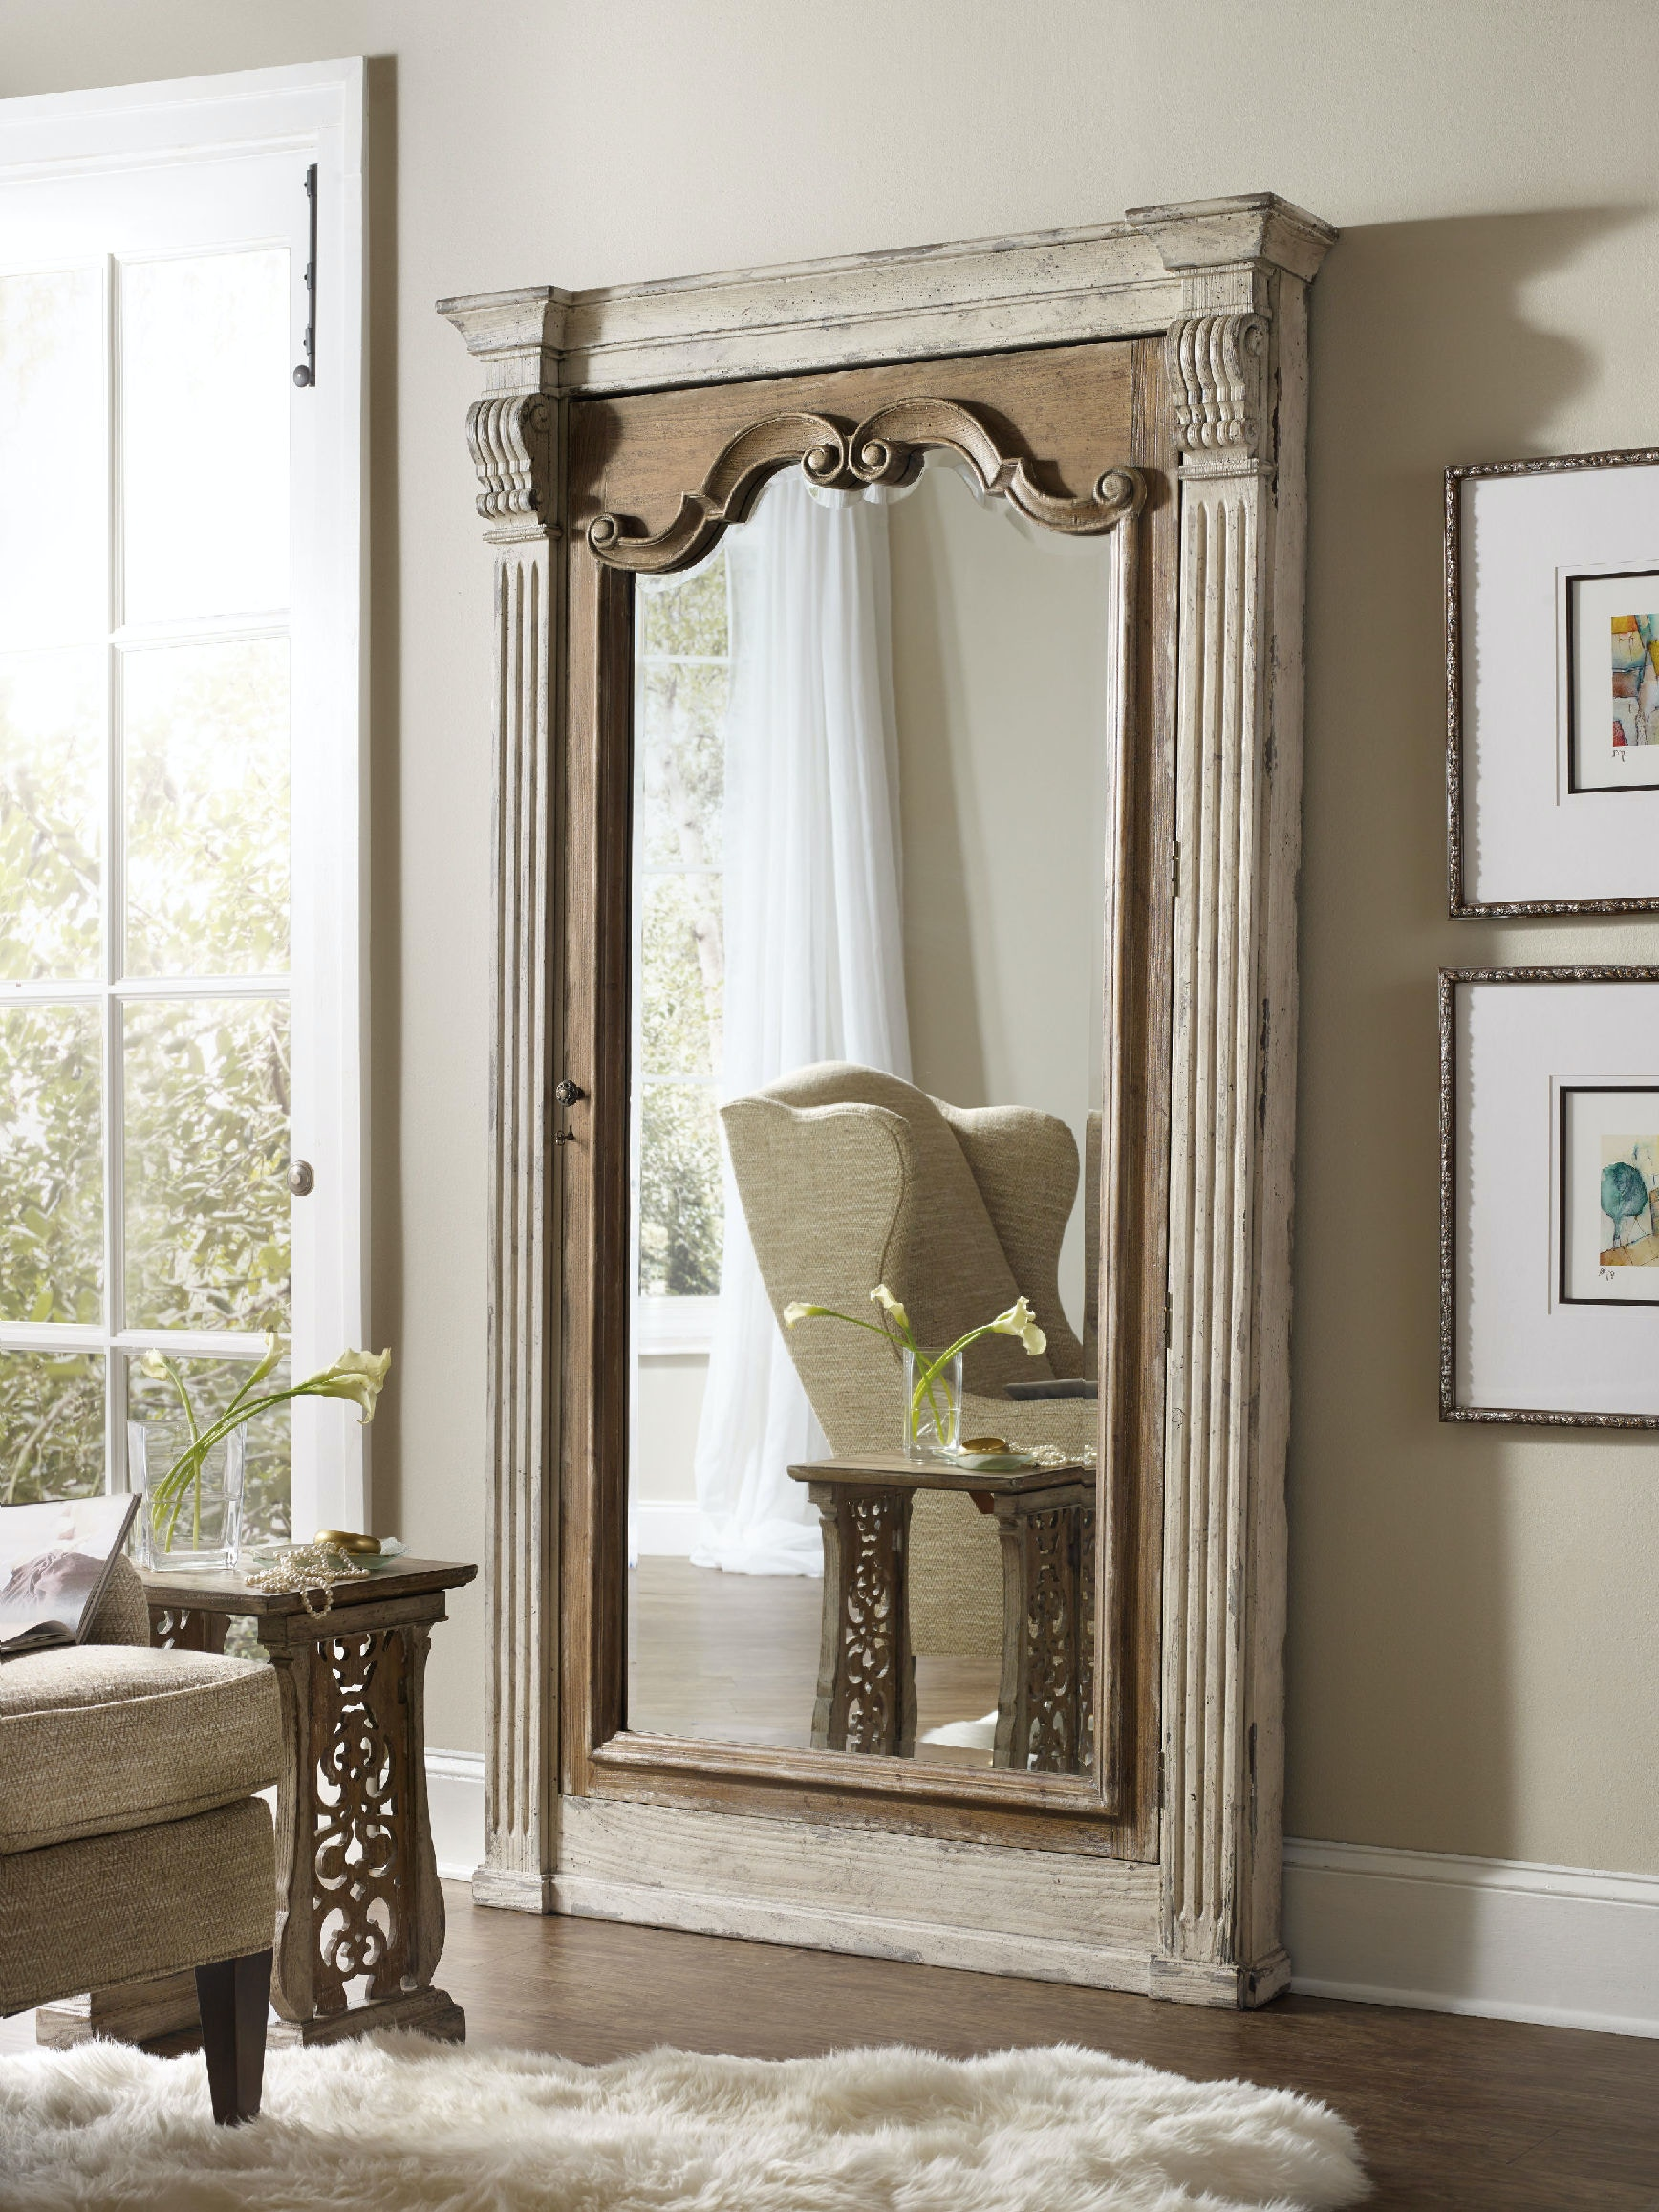 Merveilleux Hooker Furniture Chatelet Floor Mirror W/Jewelry Armoire Storage 5351 50003